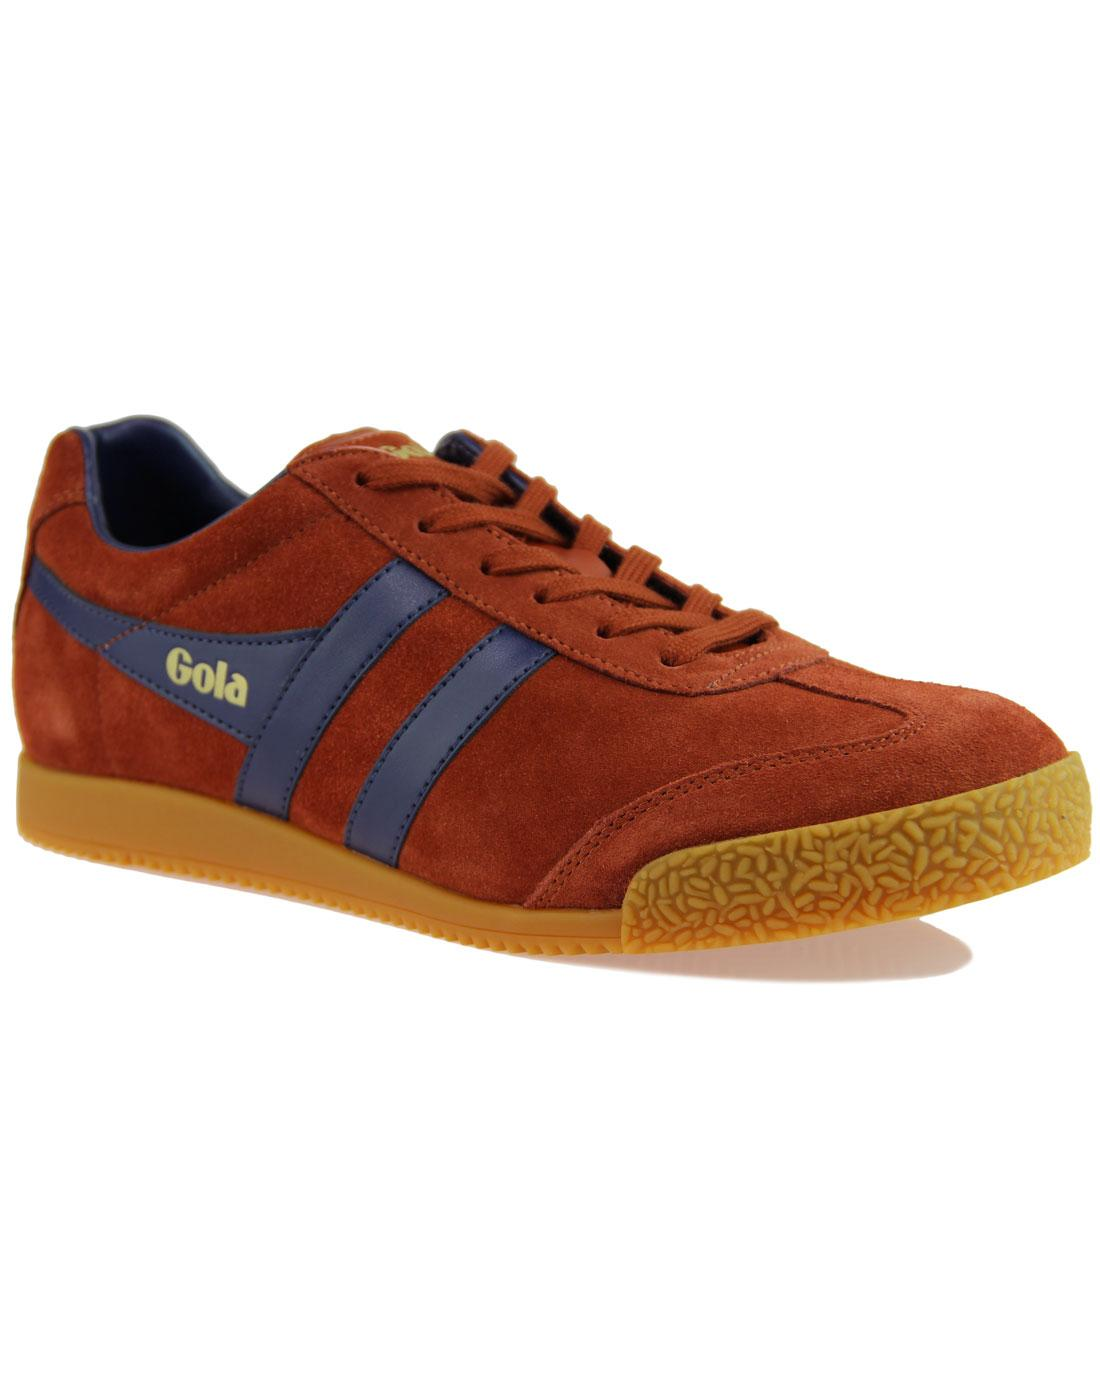 GOLA Harrier Suede Mens Retro 1970s Trainers (R/N)